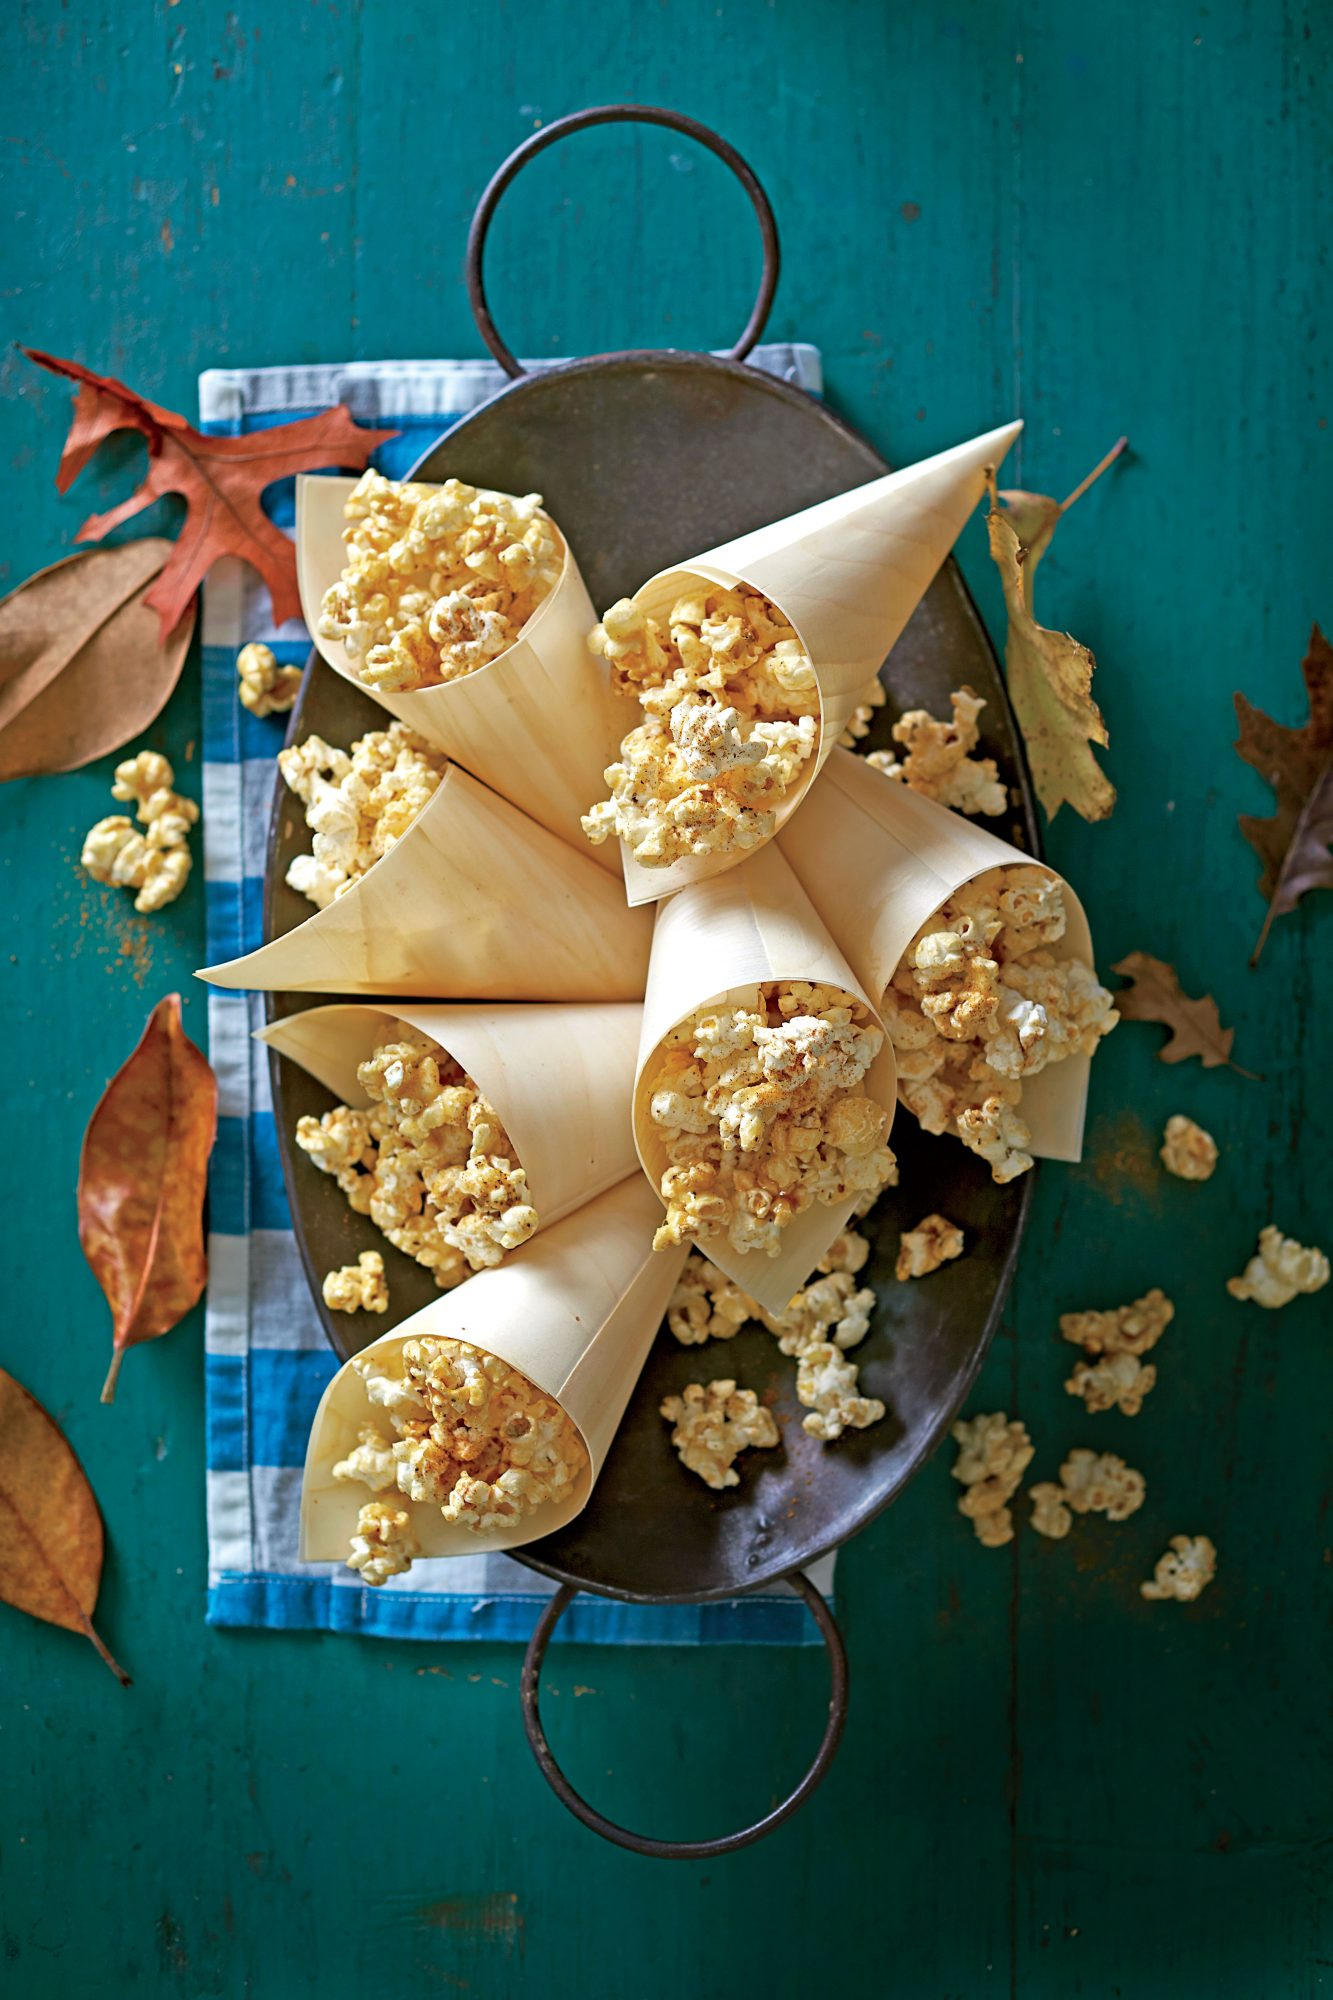 Sugar-and-Spice Caramel Popcorn Party Recipe